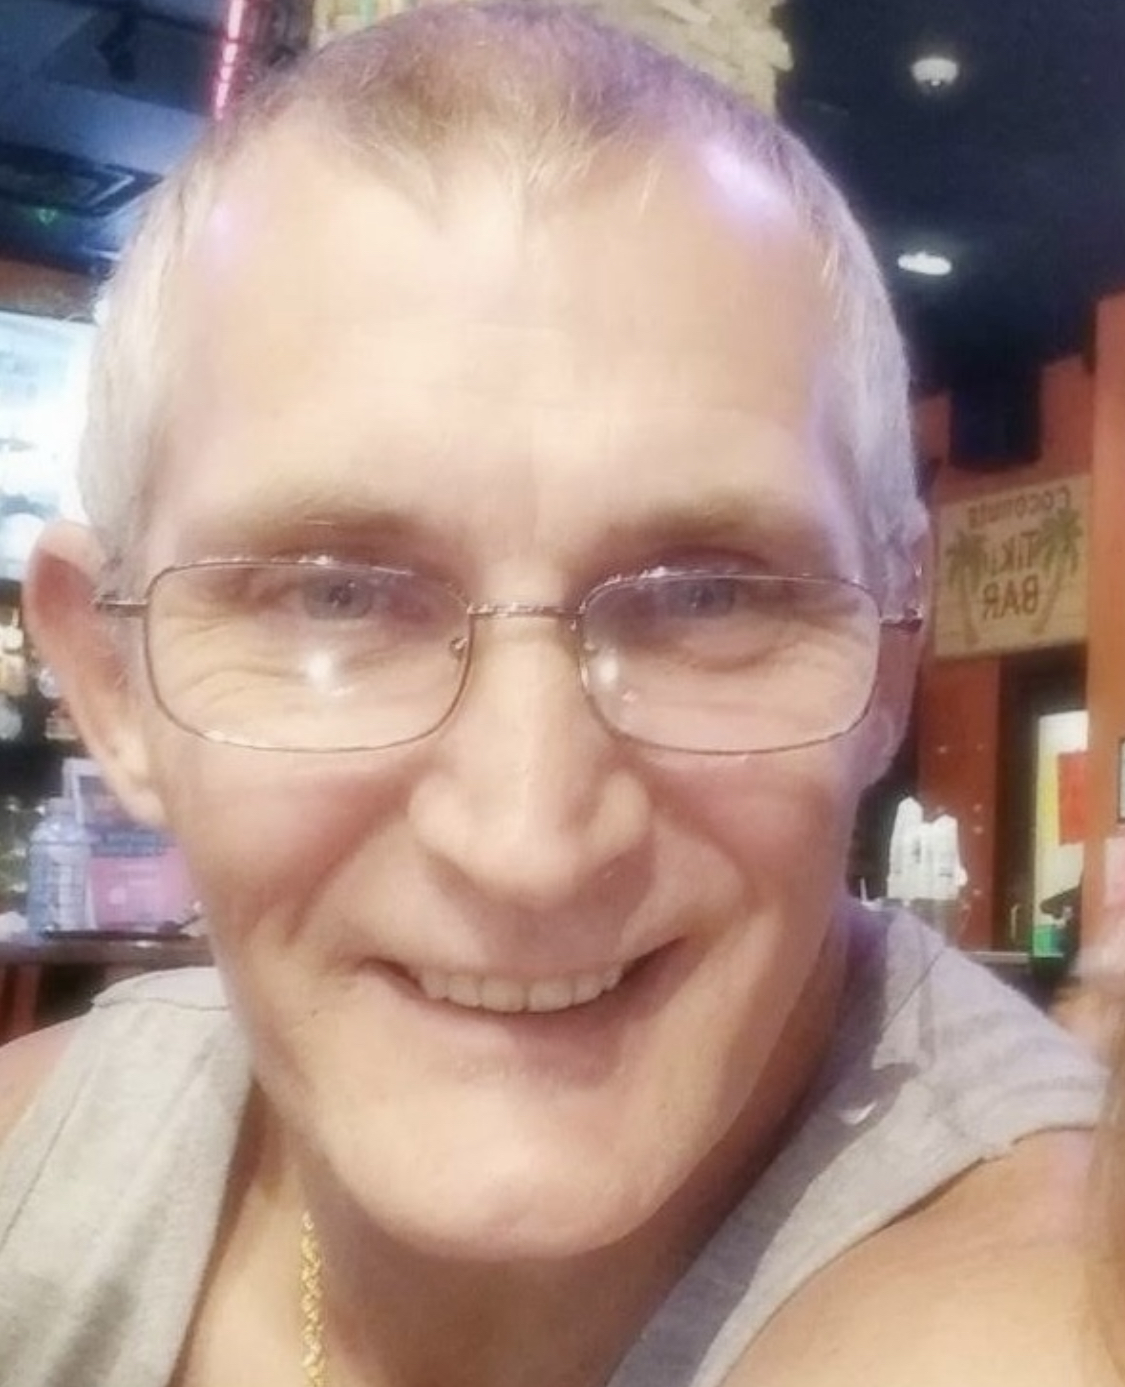 Elderly white male with glasses